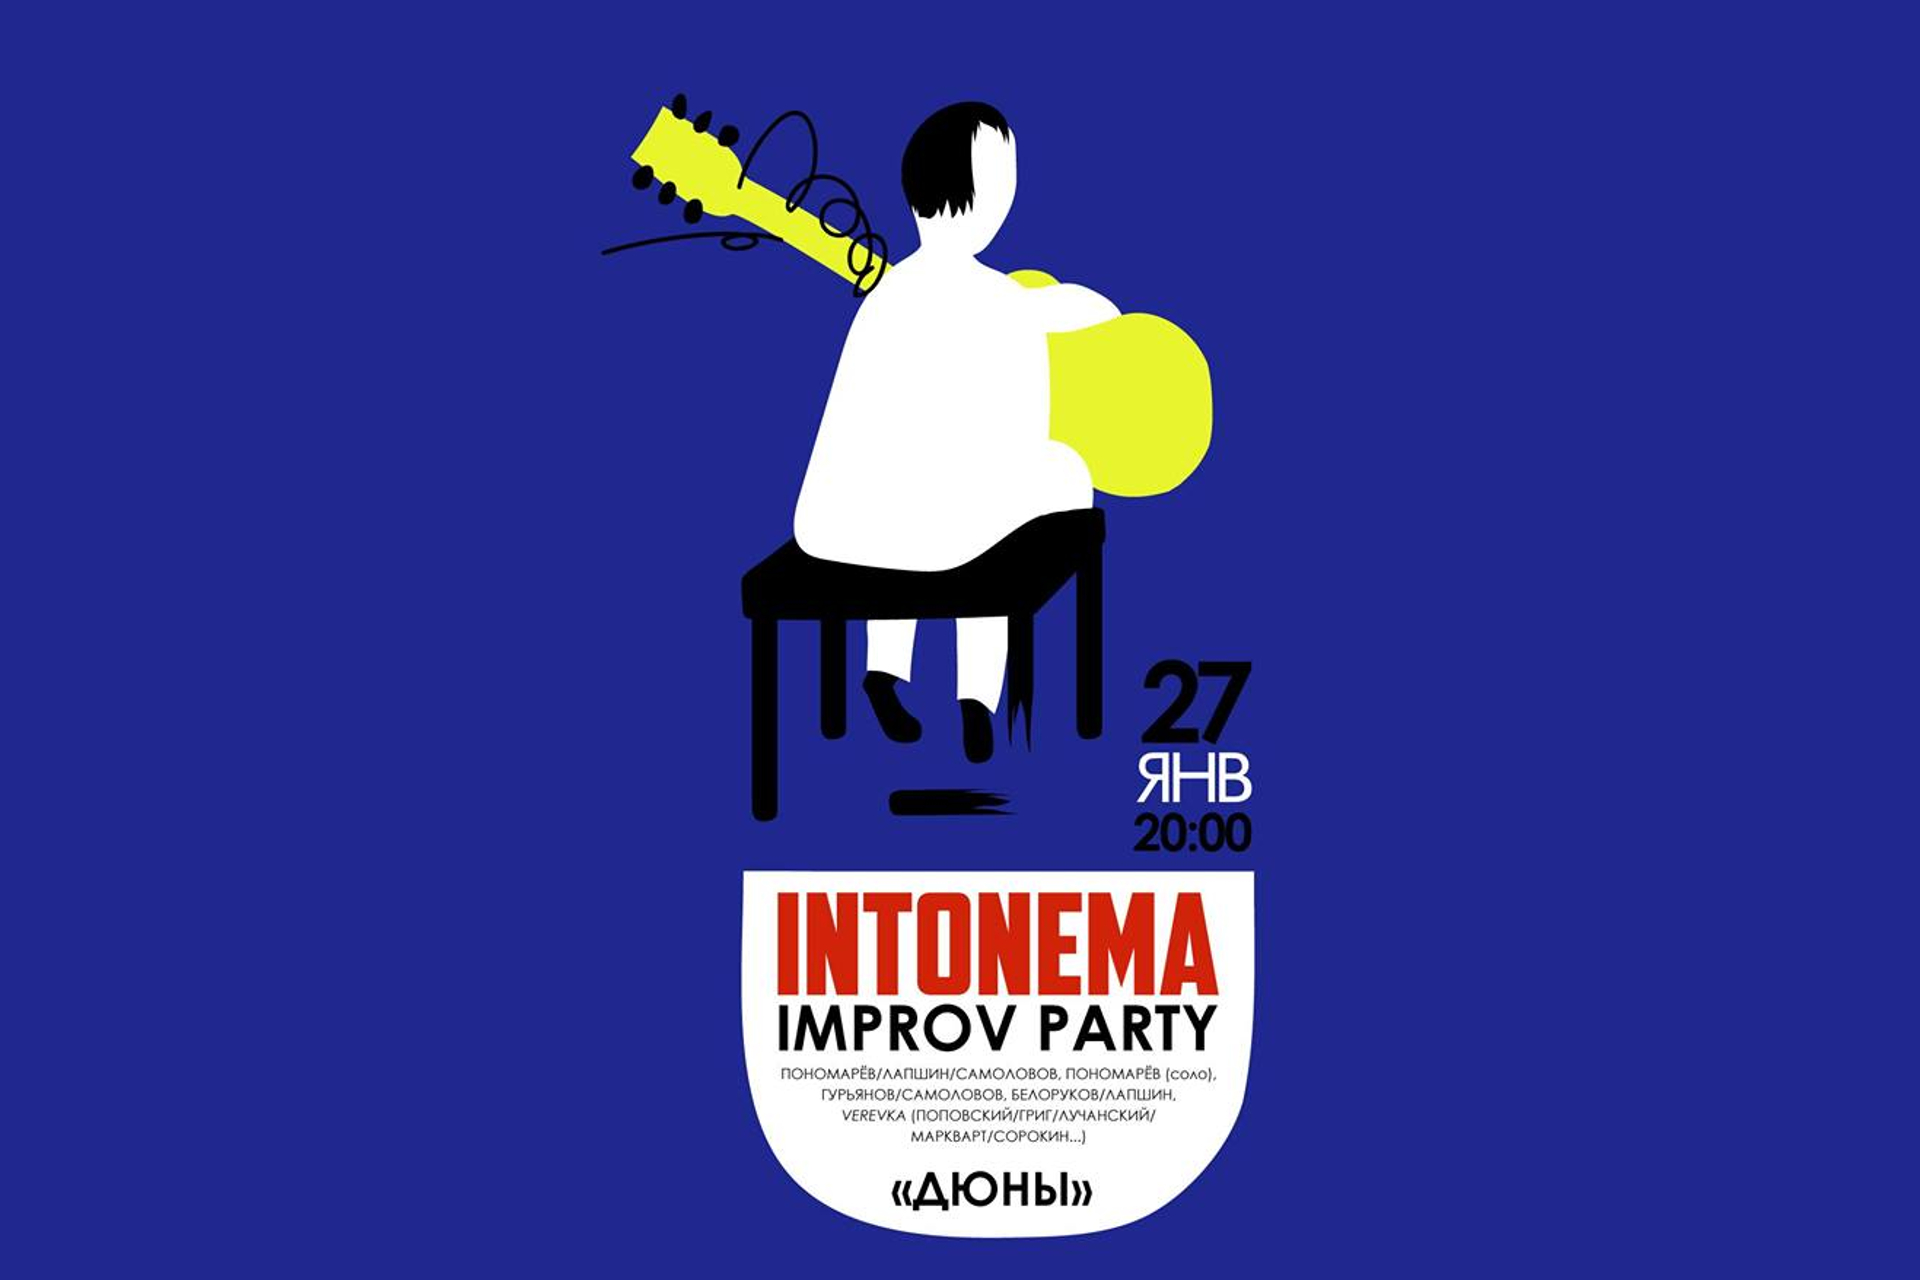 Intonema Winter Improv Party